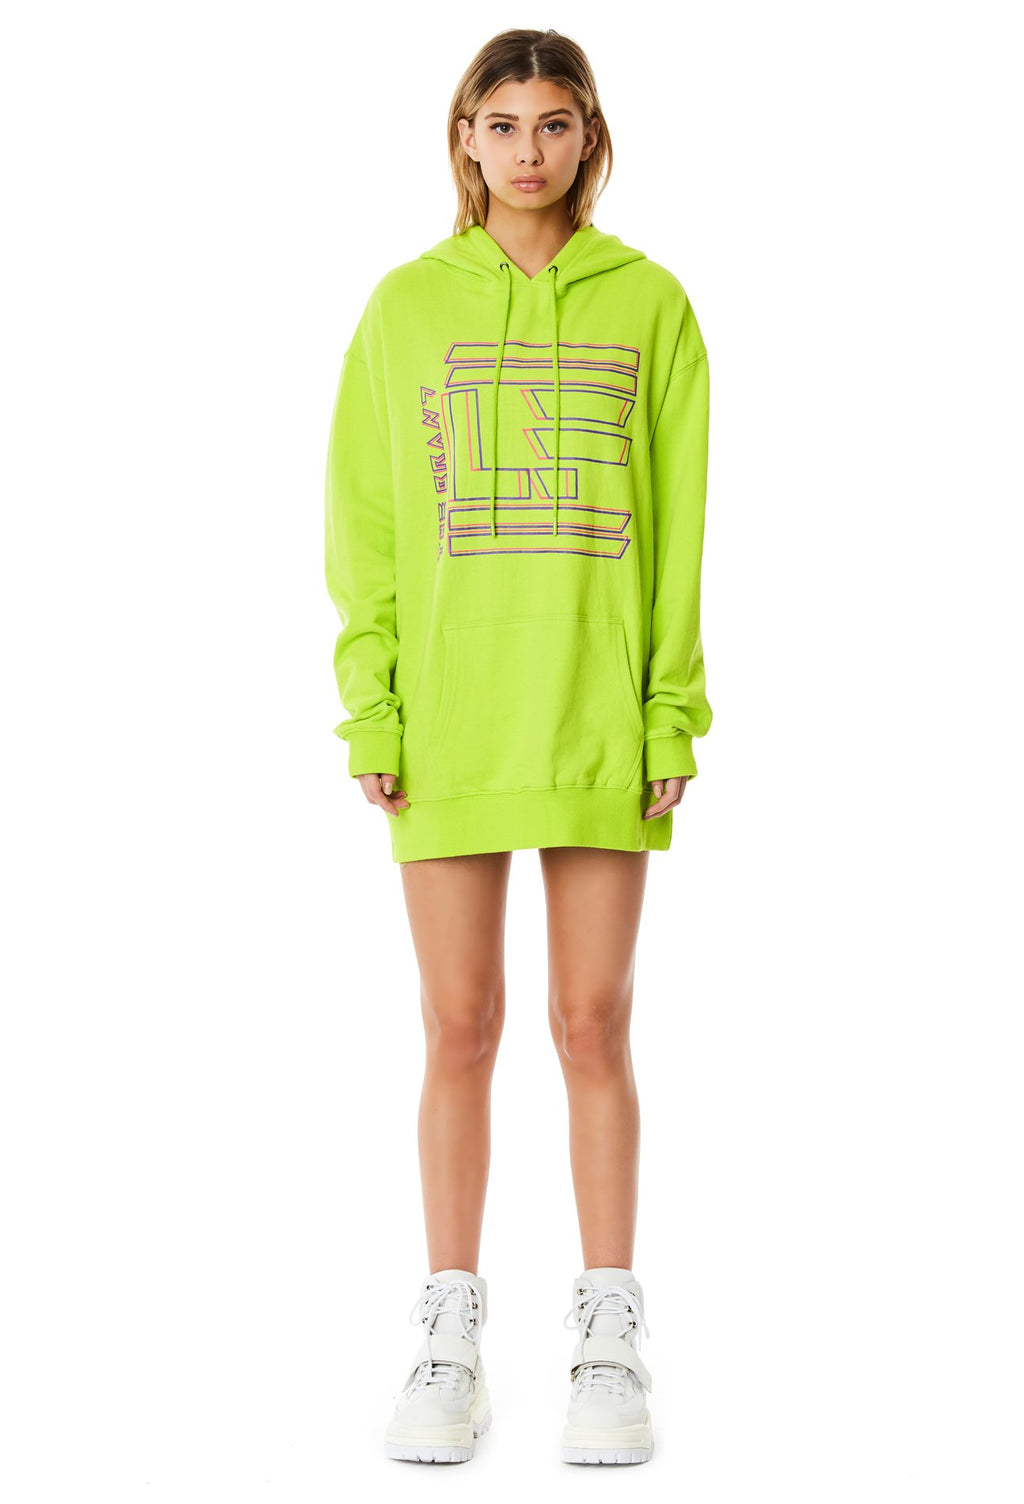 LF THE BRAND HOODED SWEATSHIRT DRESS FULL FRONT